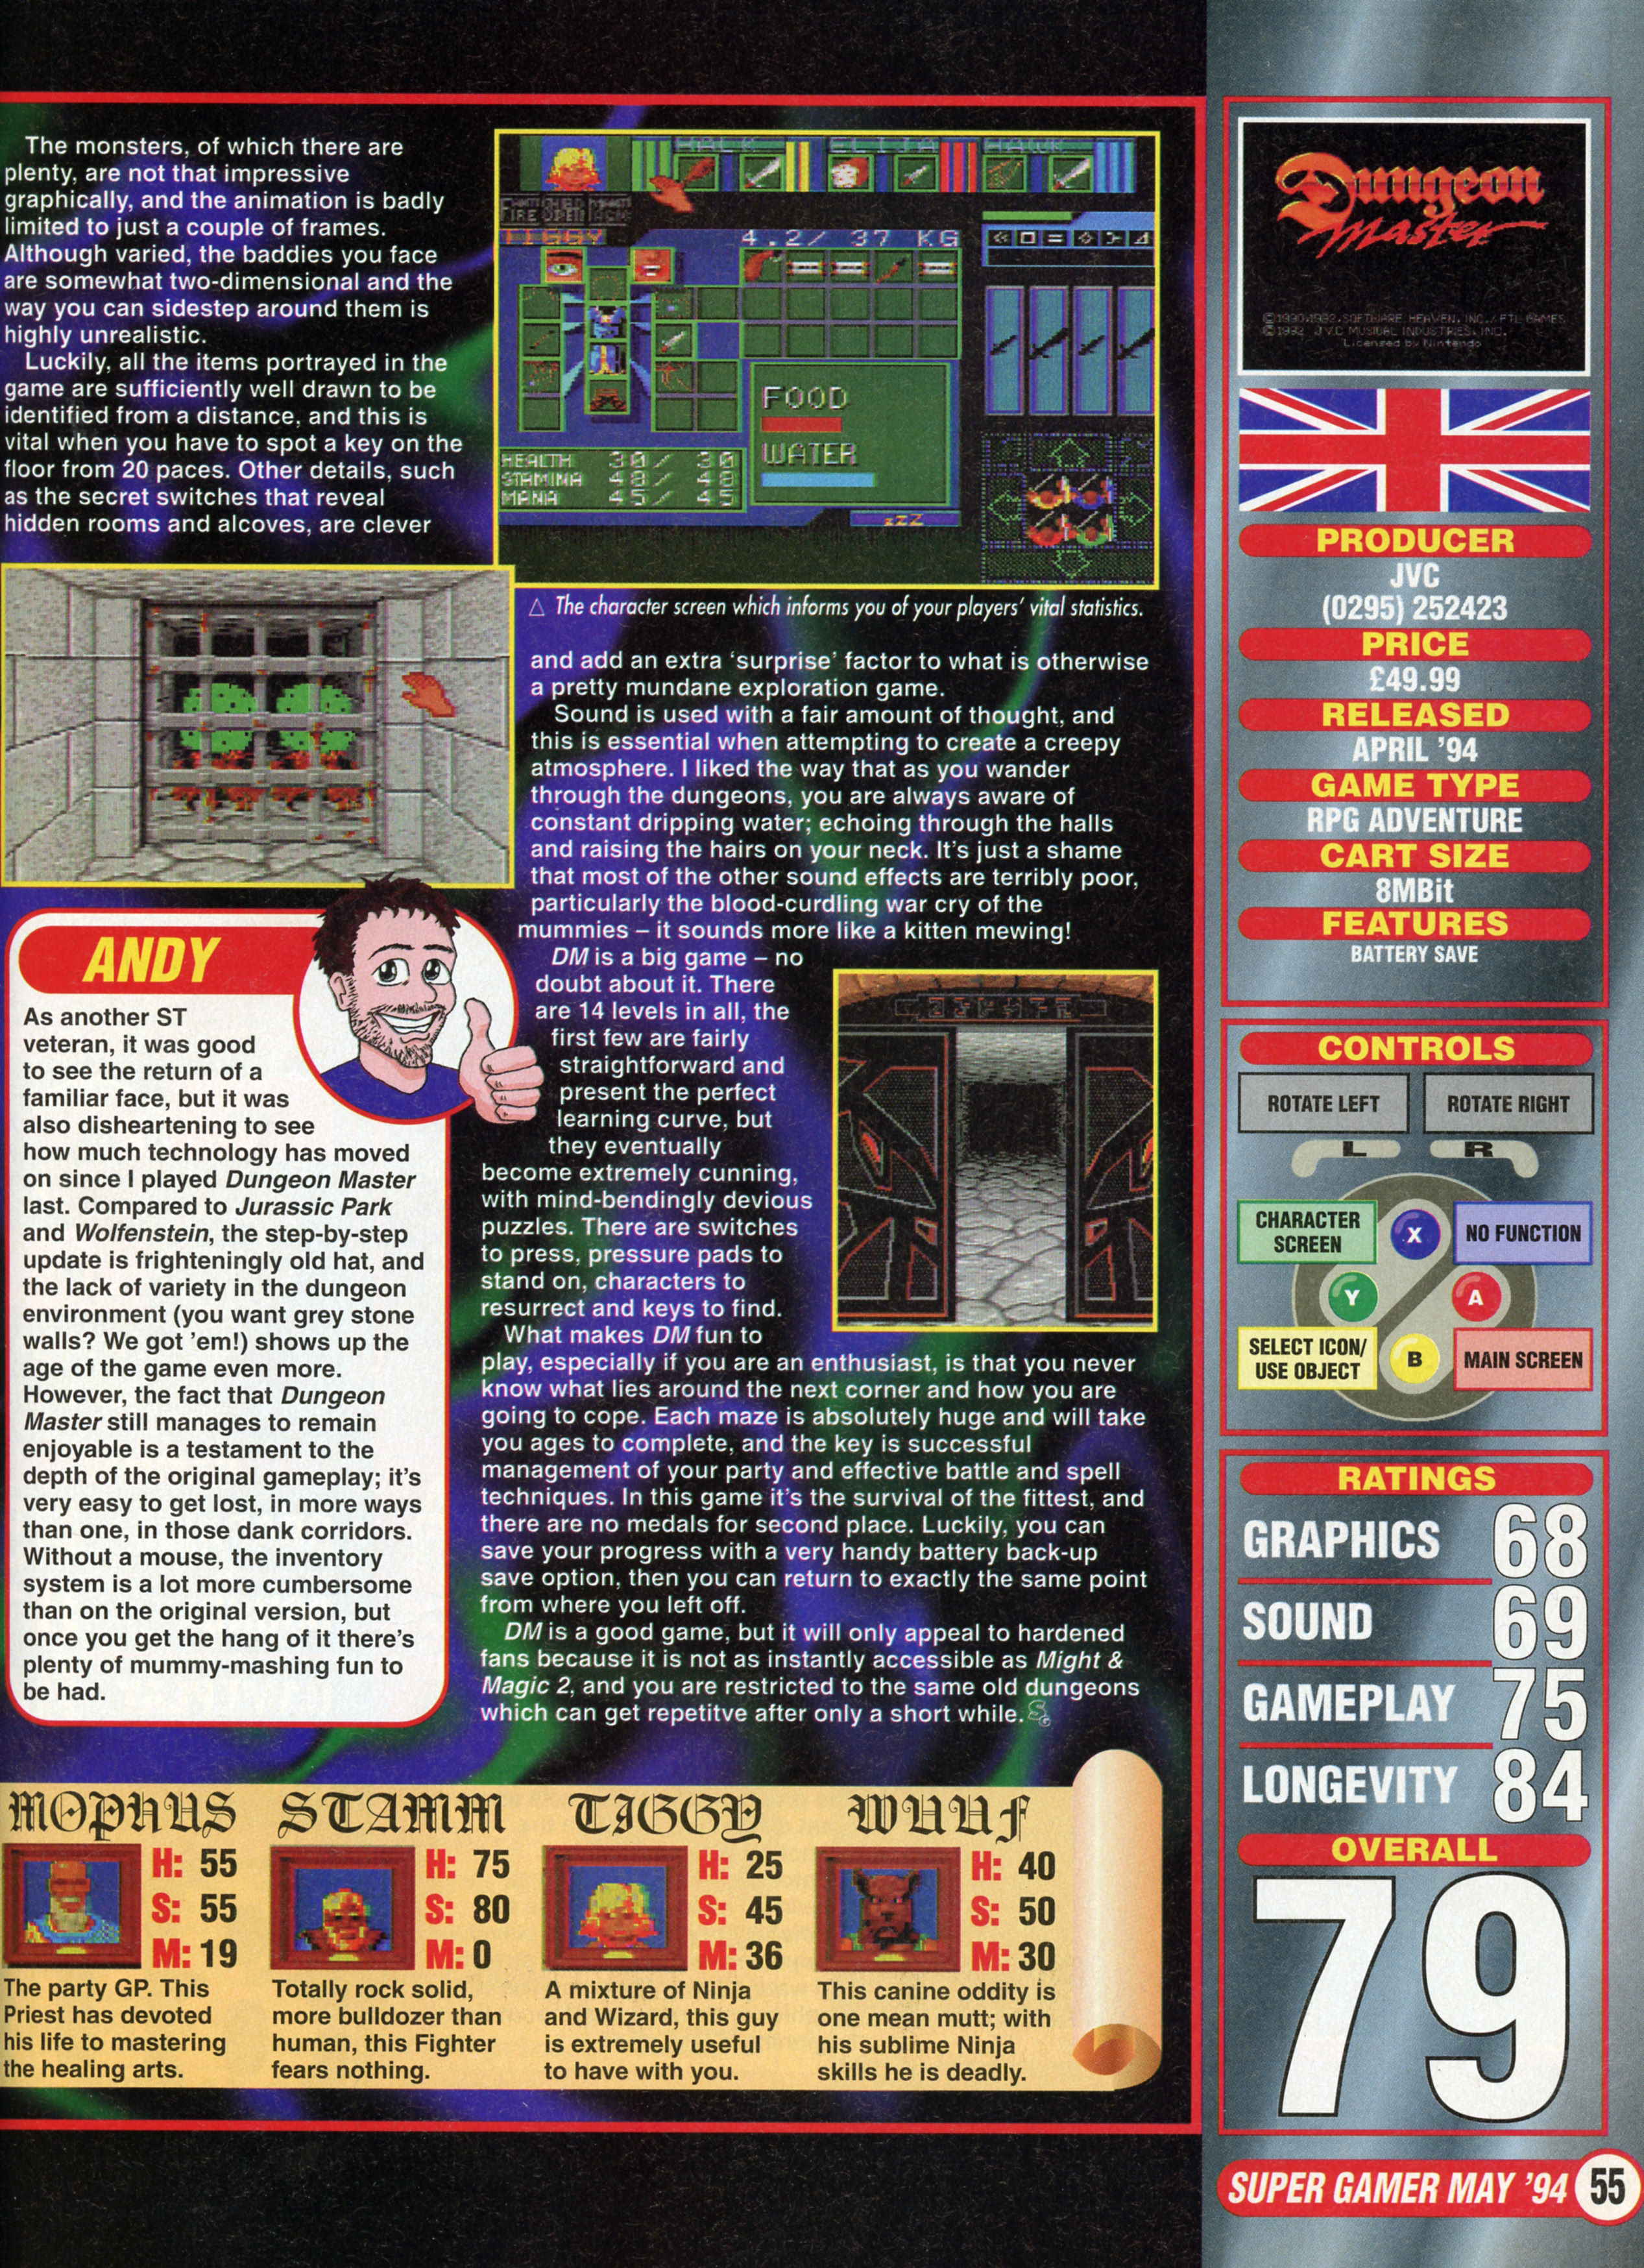 Dungeon Master for Super NES Review published in British magazine 'Nintendo Super Gamer', Issue #2 May 1994, Page 55